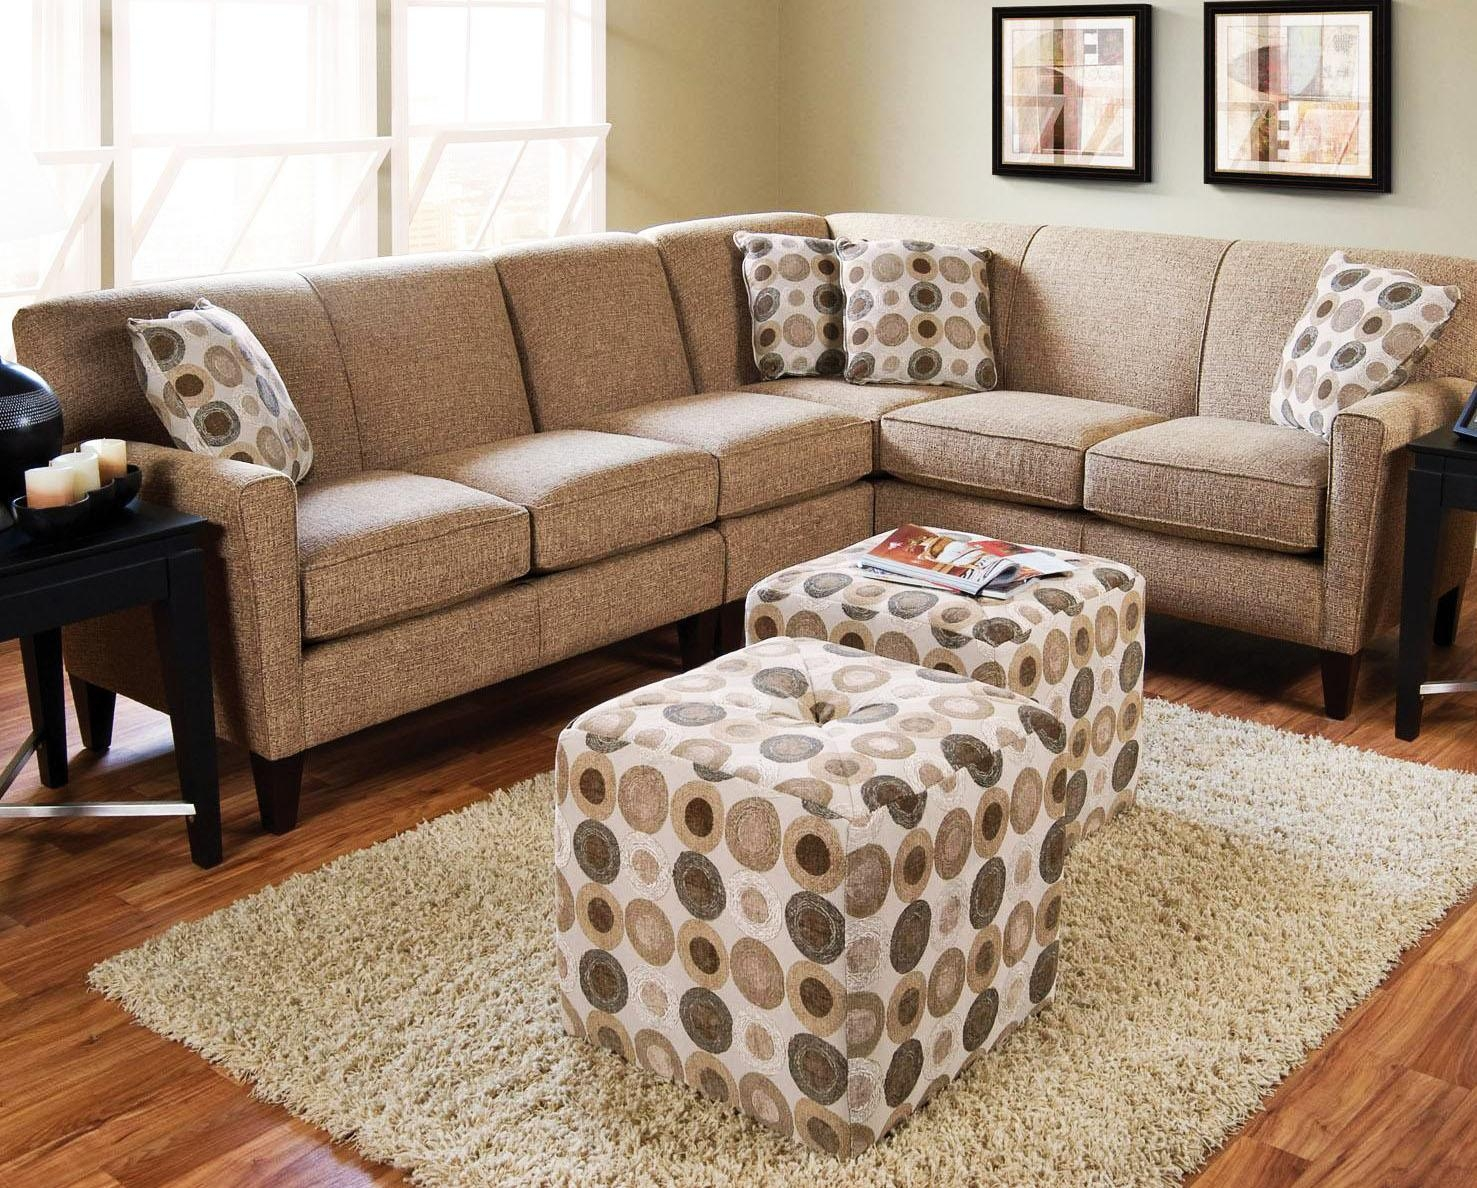 How To Choose Sectional Sofas For Small Spaces | Homefurniture Regarding Sectional Small Spaces (Image 13 of 20)